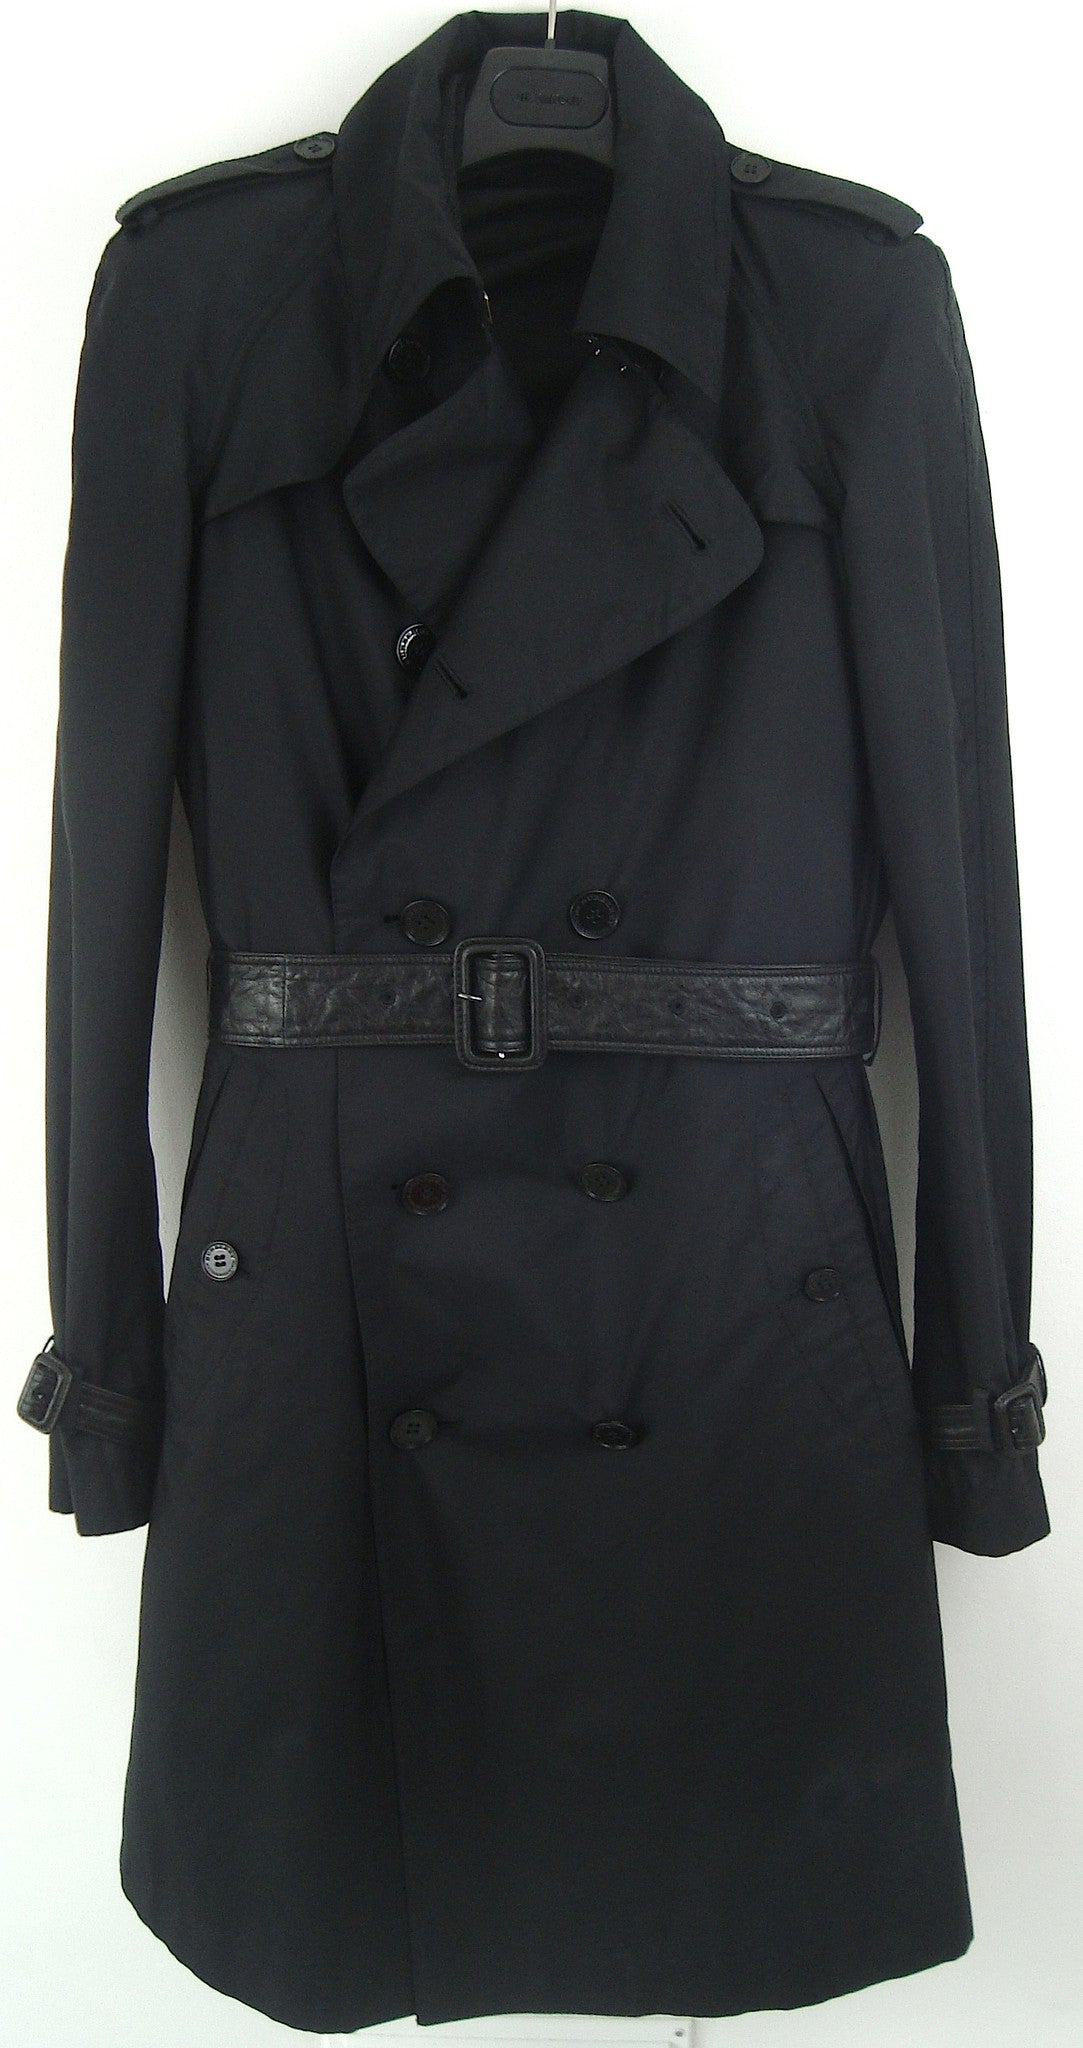 2008 Silk Gabardine Trench Coat with Leather details